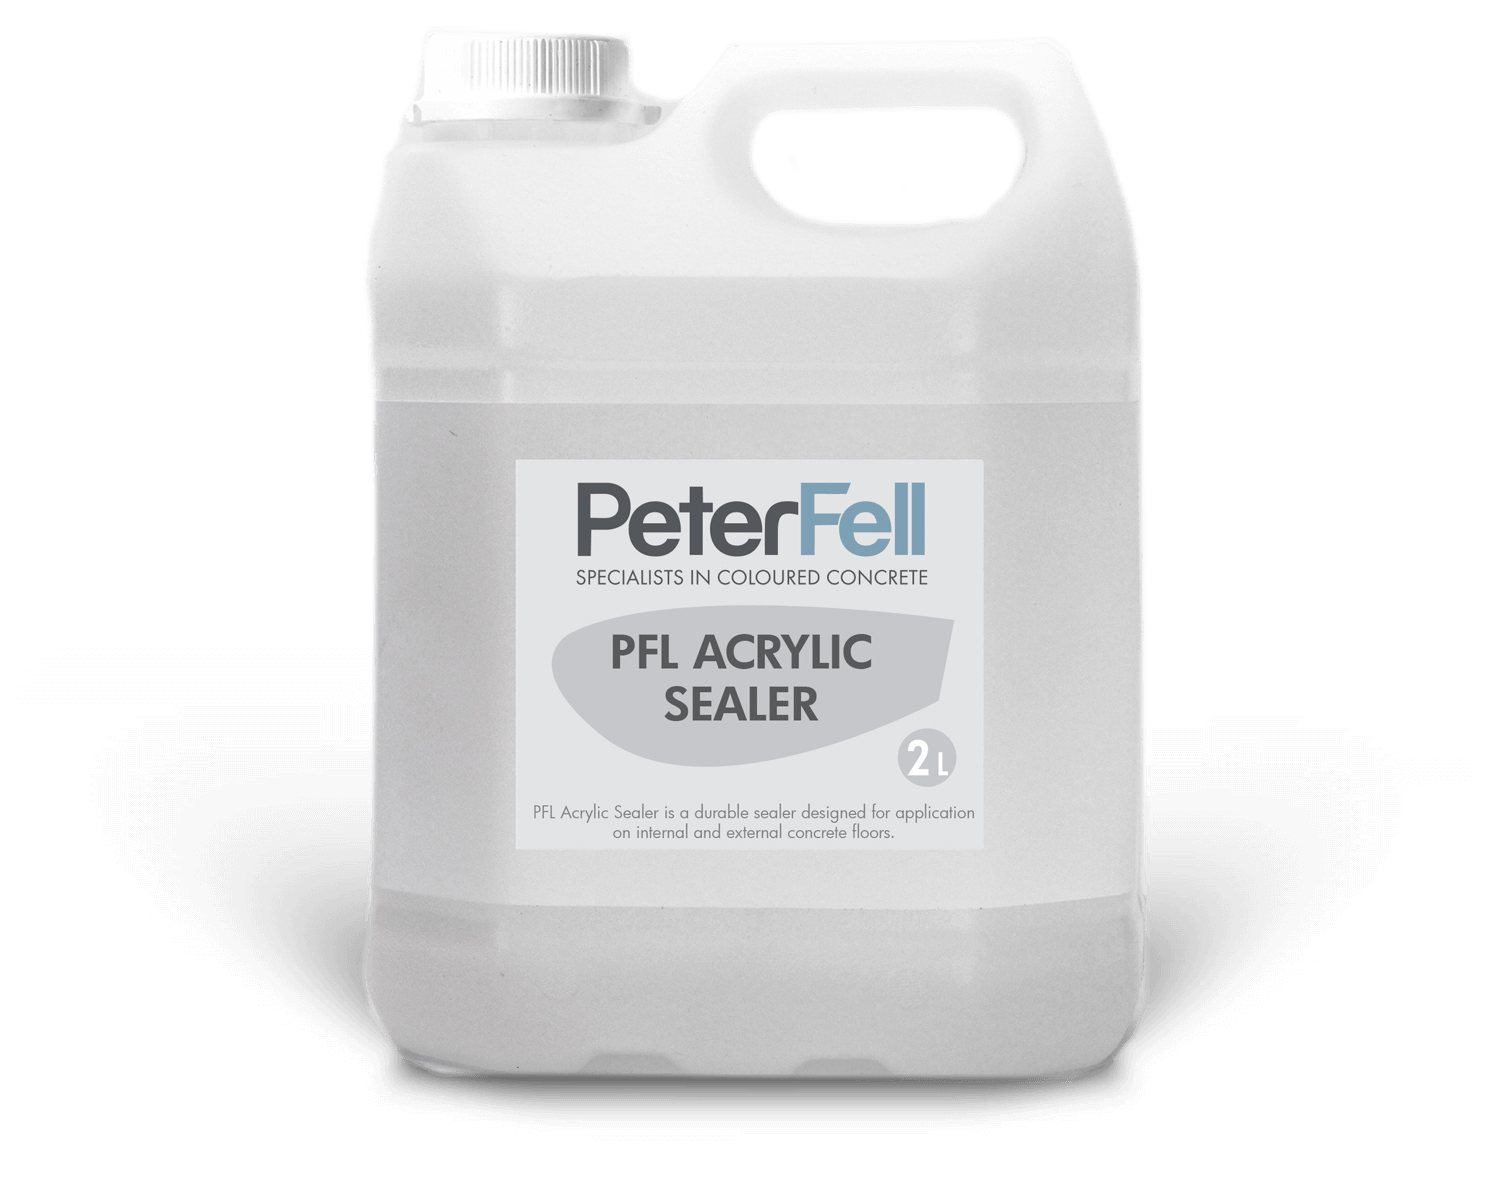 PFL Acrylic Concrete Sealer 2 litre bottle